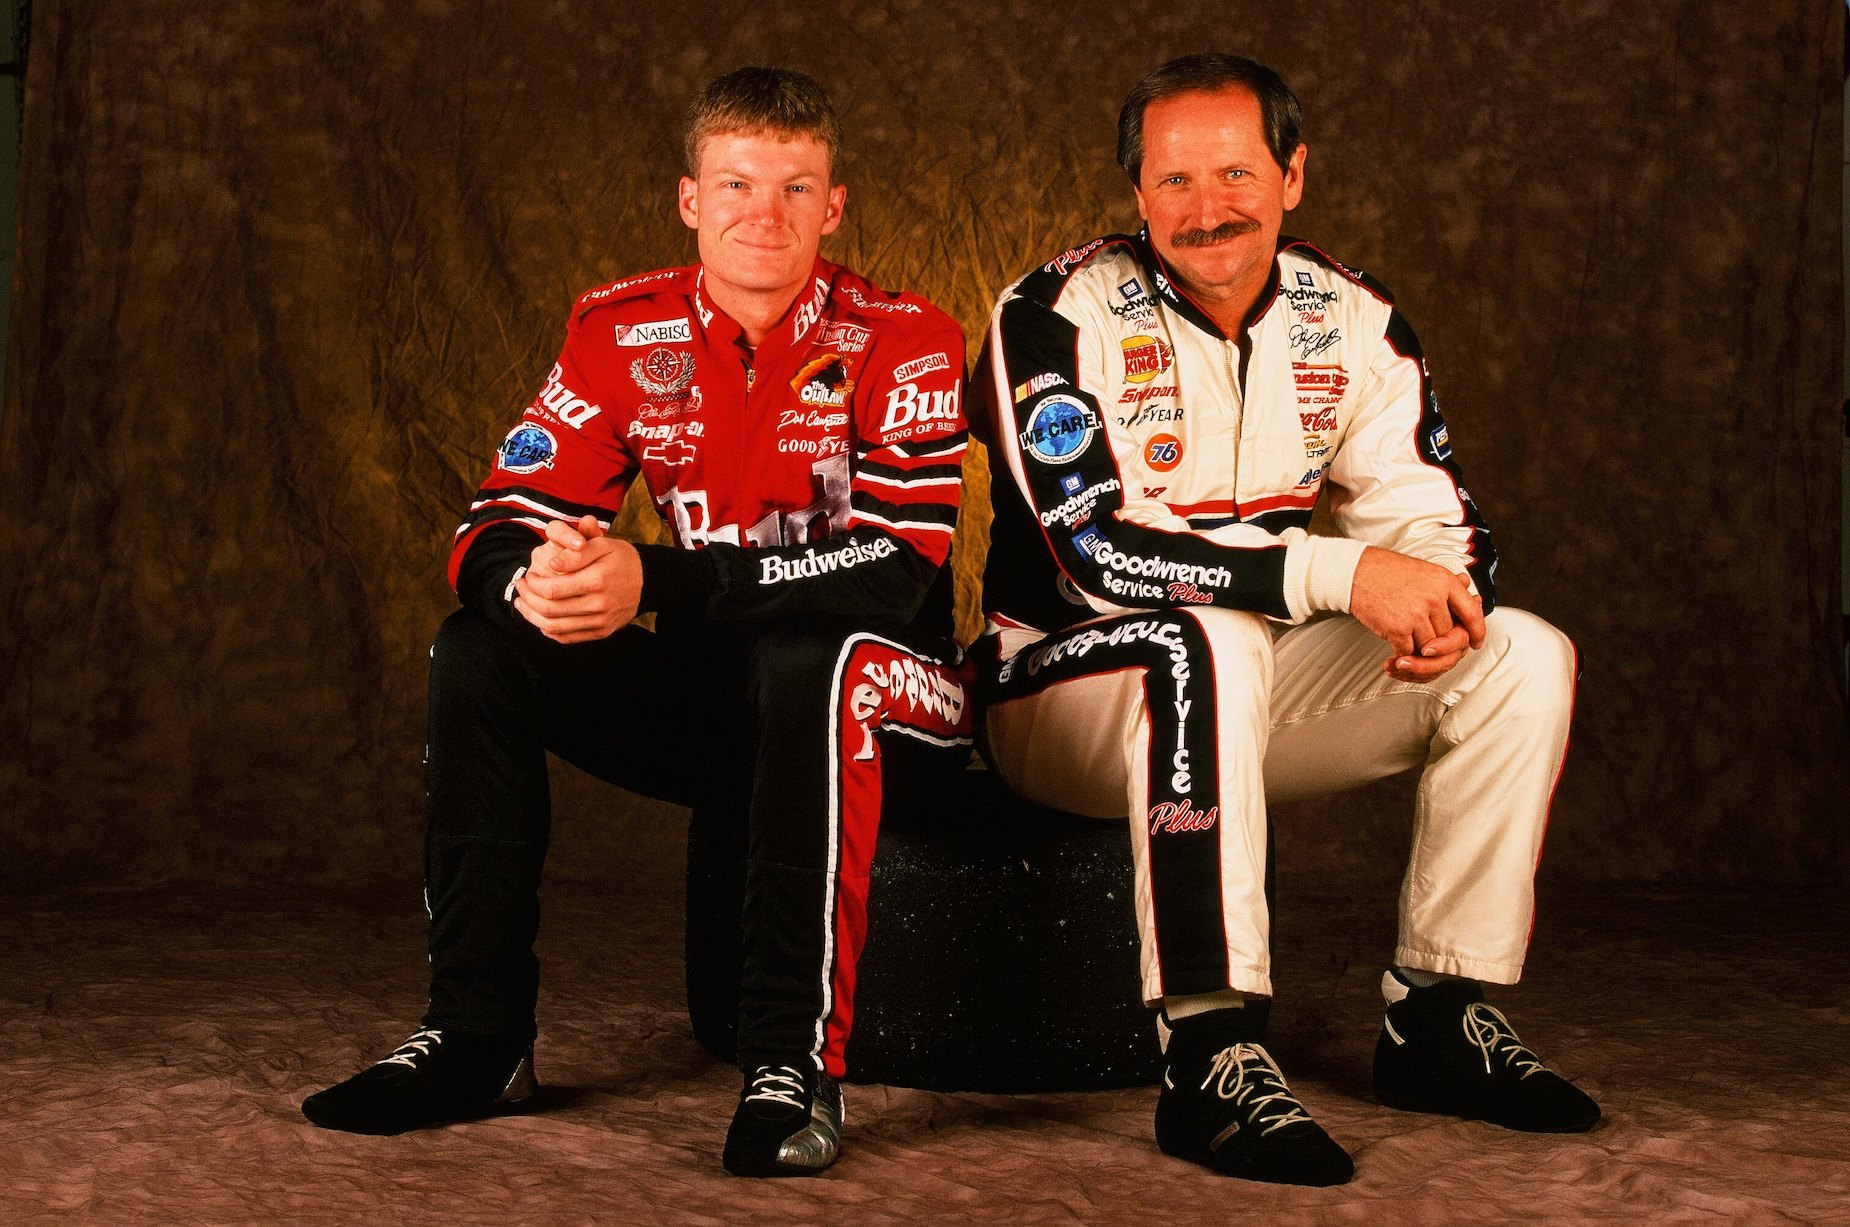 Dale Earnhardt Jr. only started racing in order to have a relationship with his father.